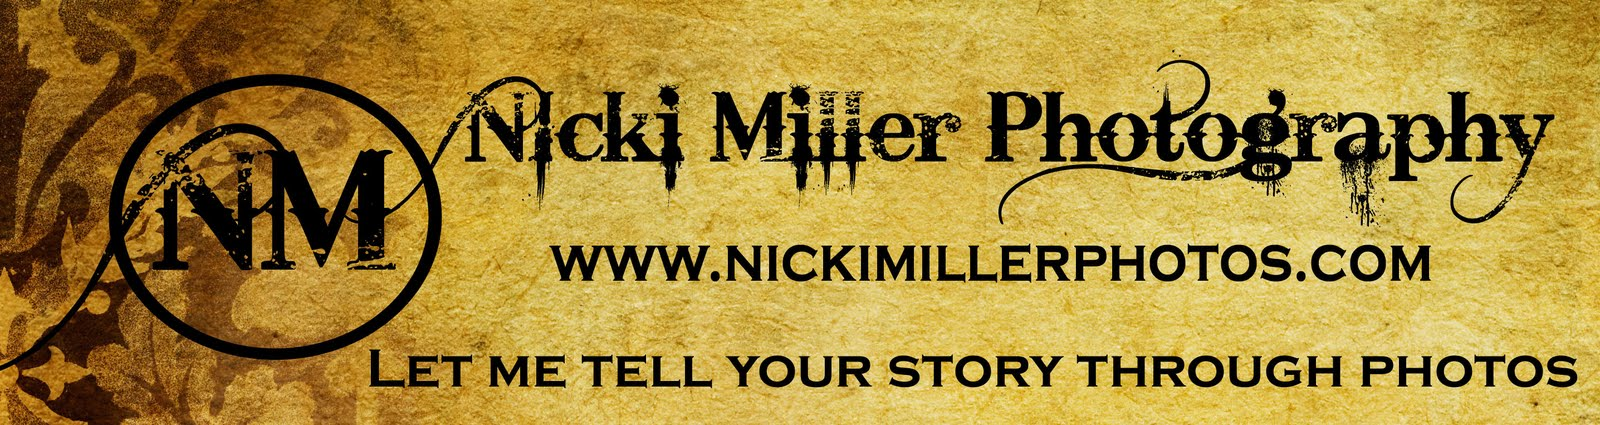 Nicki Miller Photography